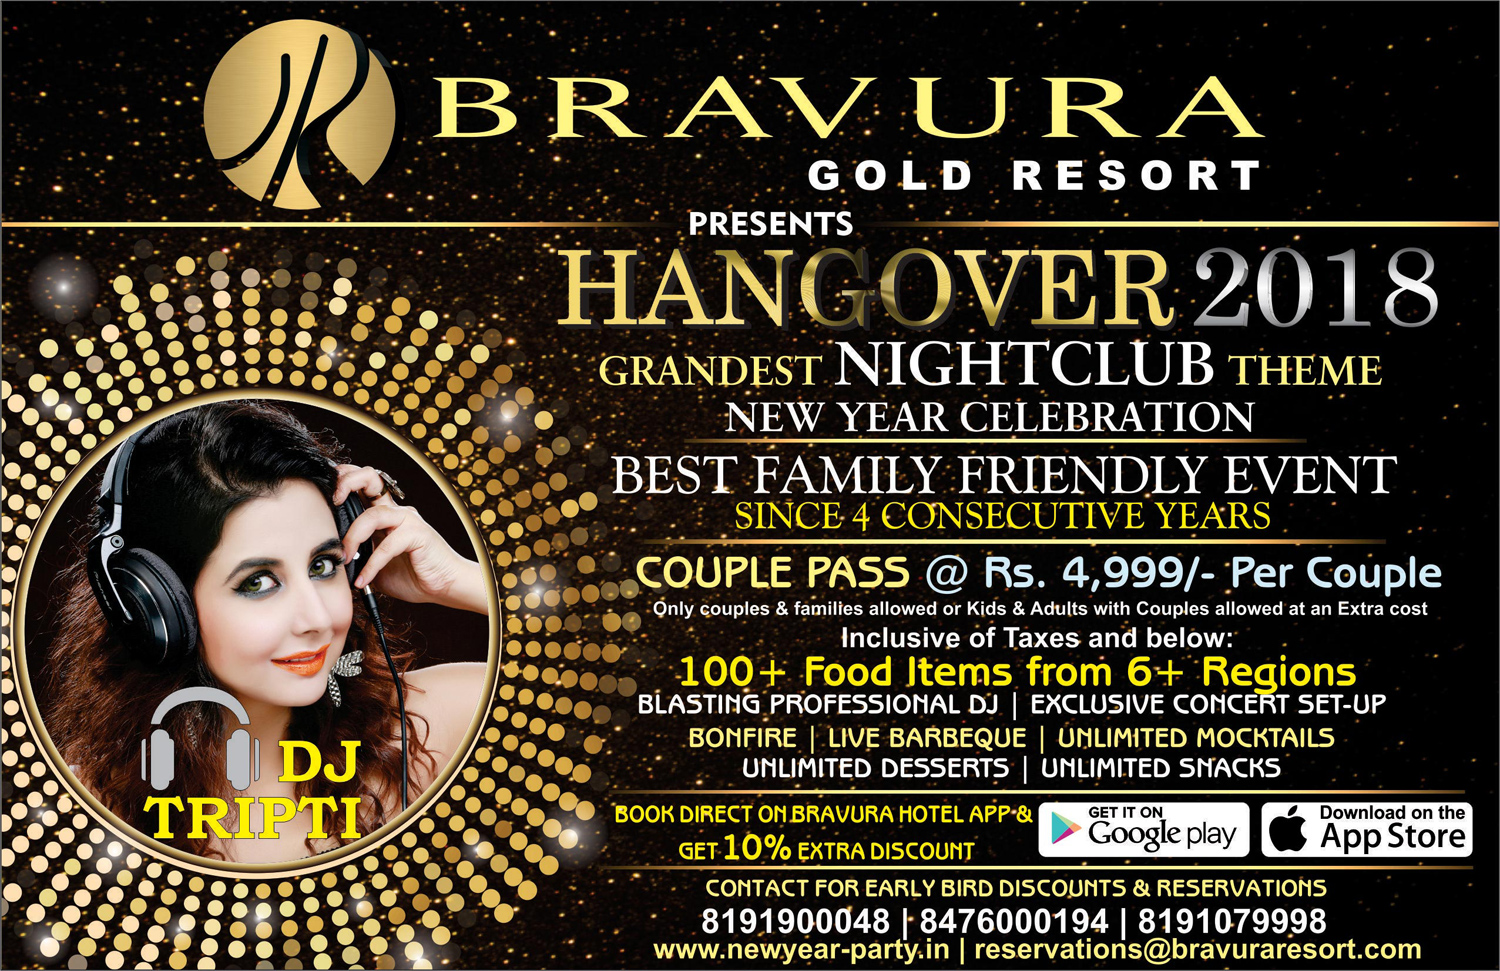 after the grand success of new year party hangover 2017 bravura gold resort once again presents hangover 2018 with a promise to make it one of the